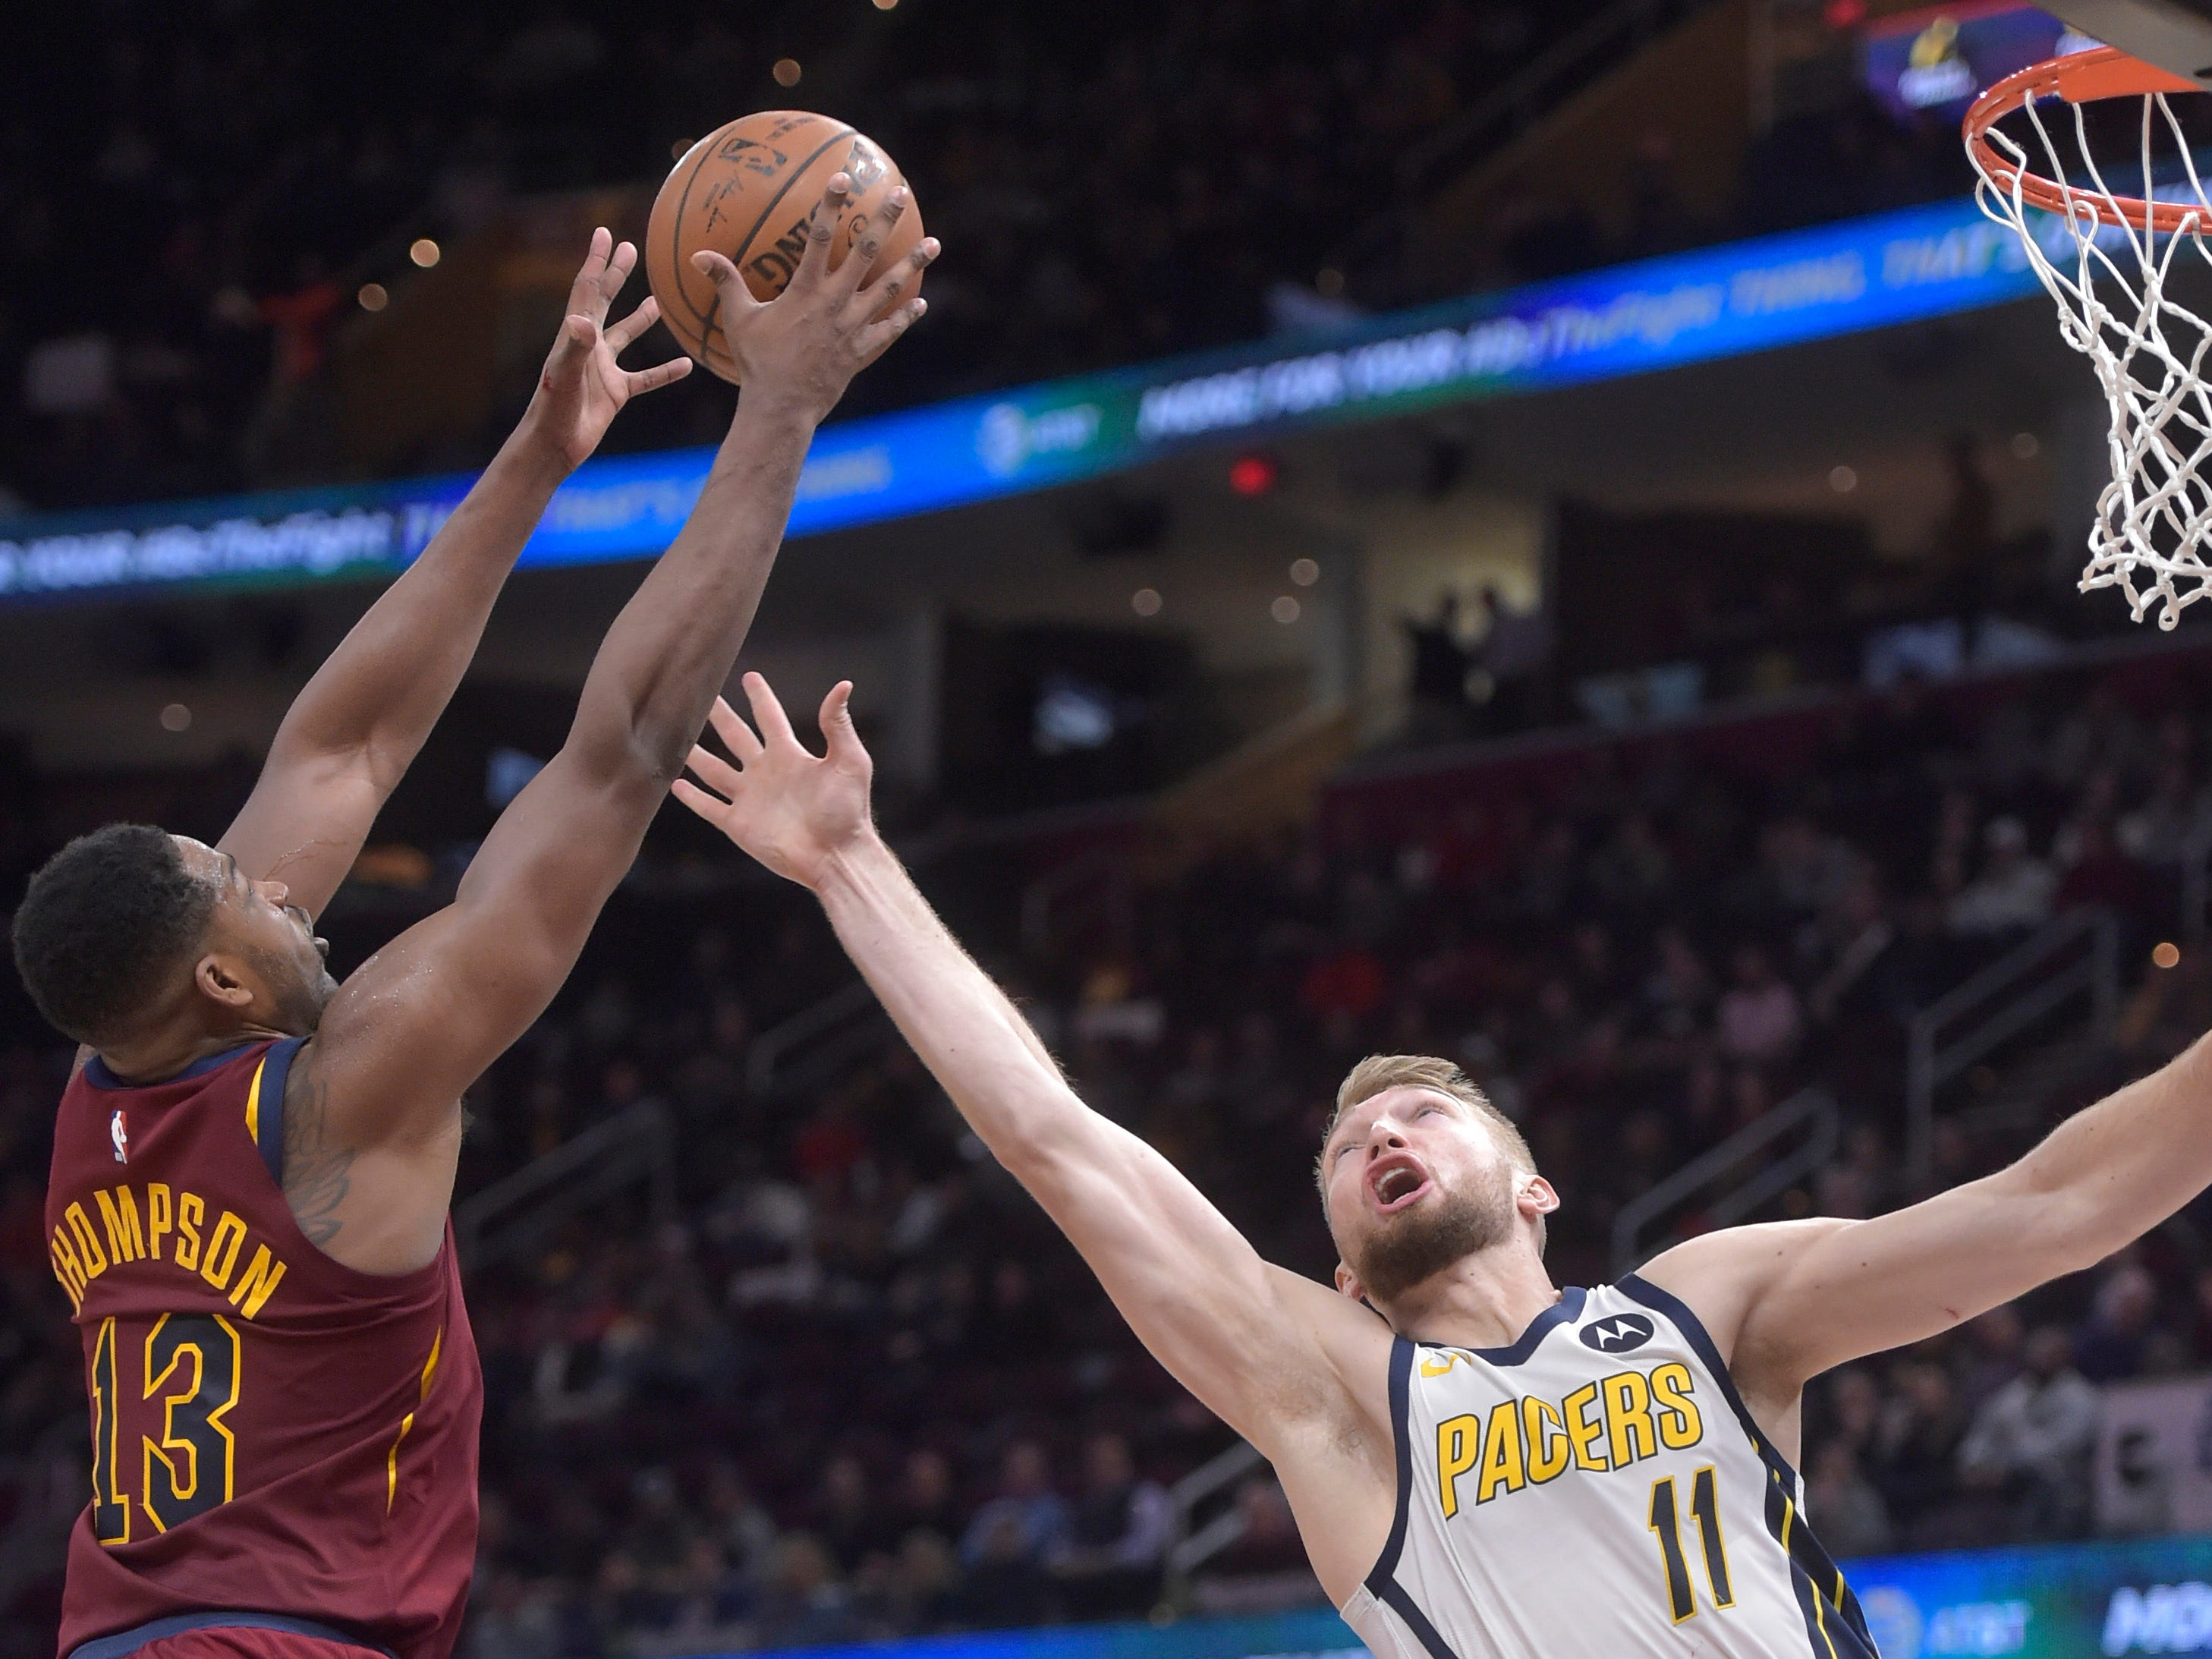 Jan 8, 2019; Cleveland, OH, USA; Cleveland Cavaliers center Tristan Thompson (13) rebounds against Indiana Pacers forward Domantas Sabonis (11) in the second quarter at Quicken Loans Arena. Mandatory Credit: David Richard-USA TODAY Sports